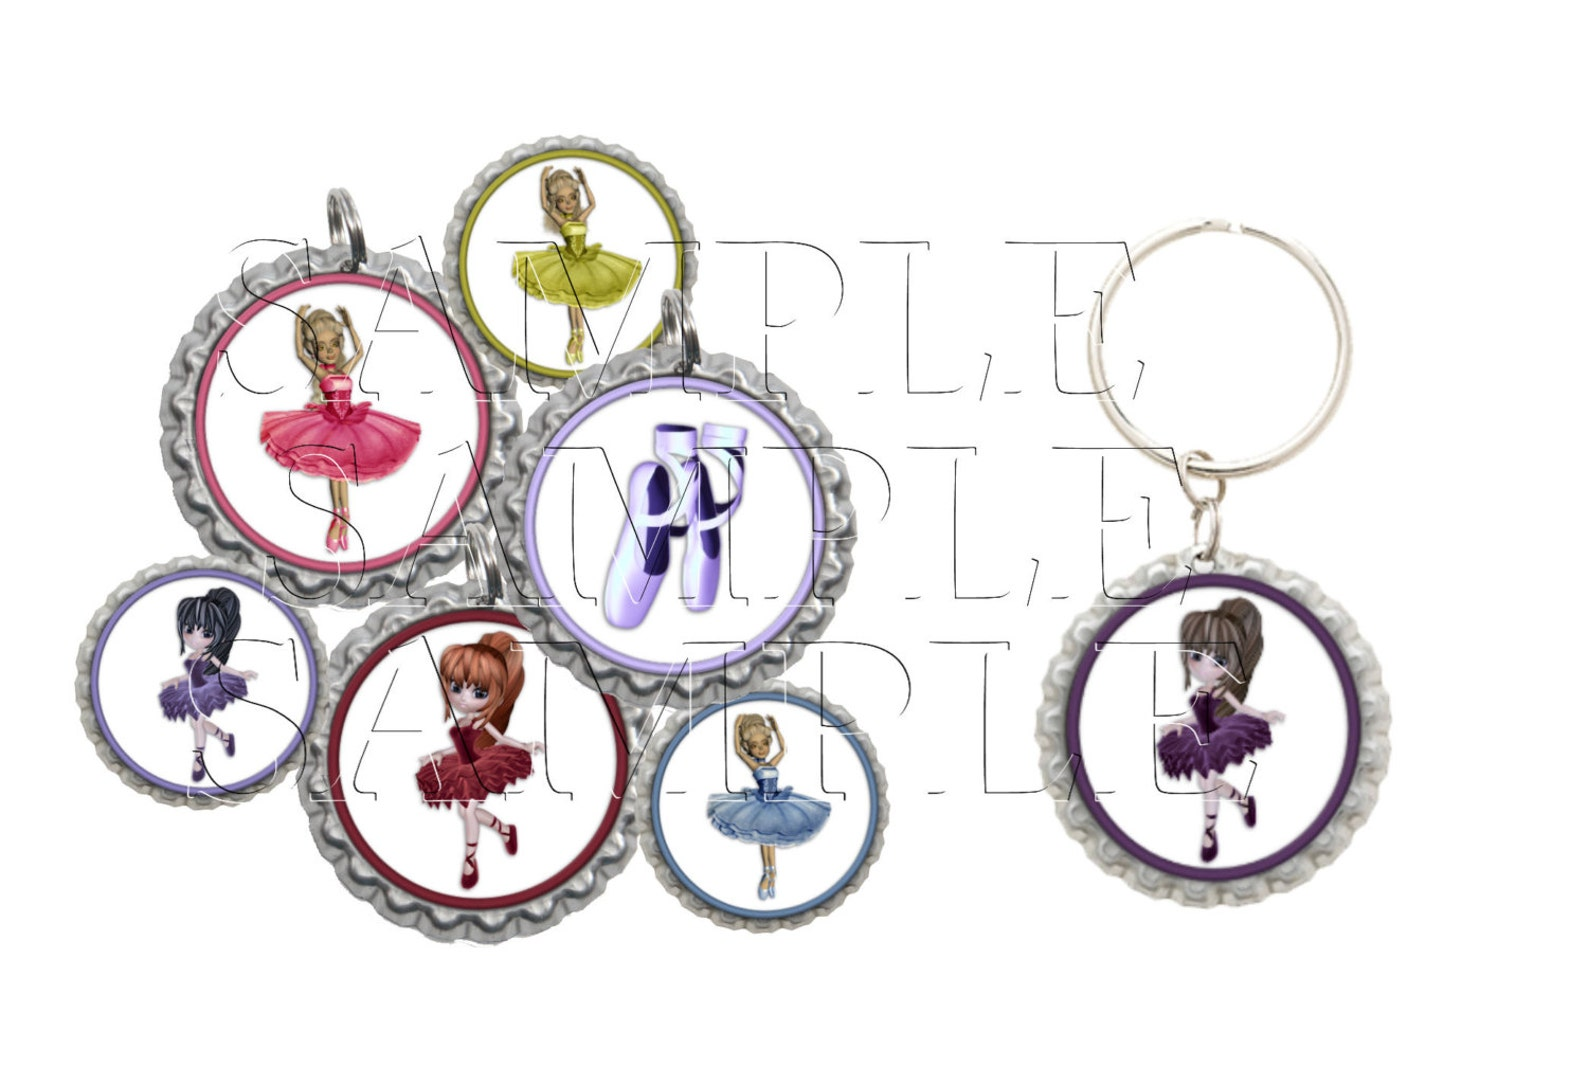 ballet bottle cap images, clip art,1 inch circles, cupcake toppers, stickers,buttons, digital download, diy printable